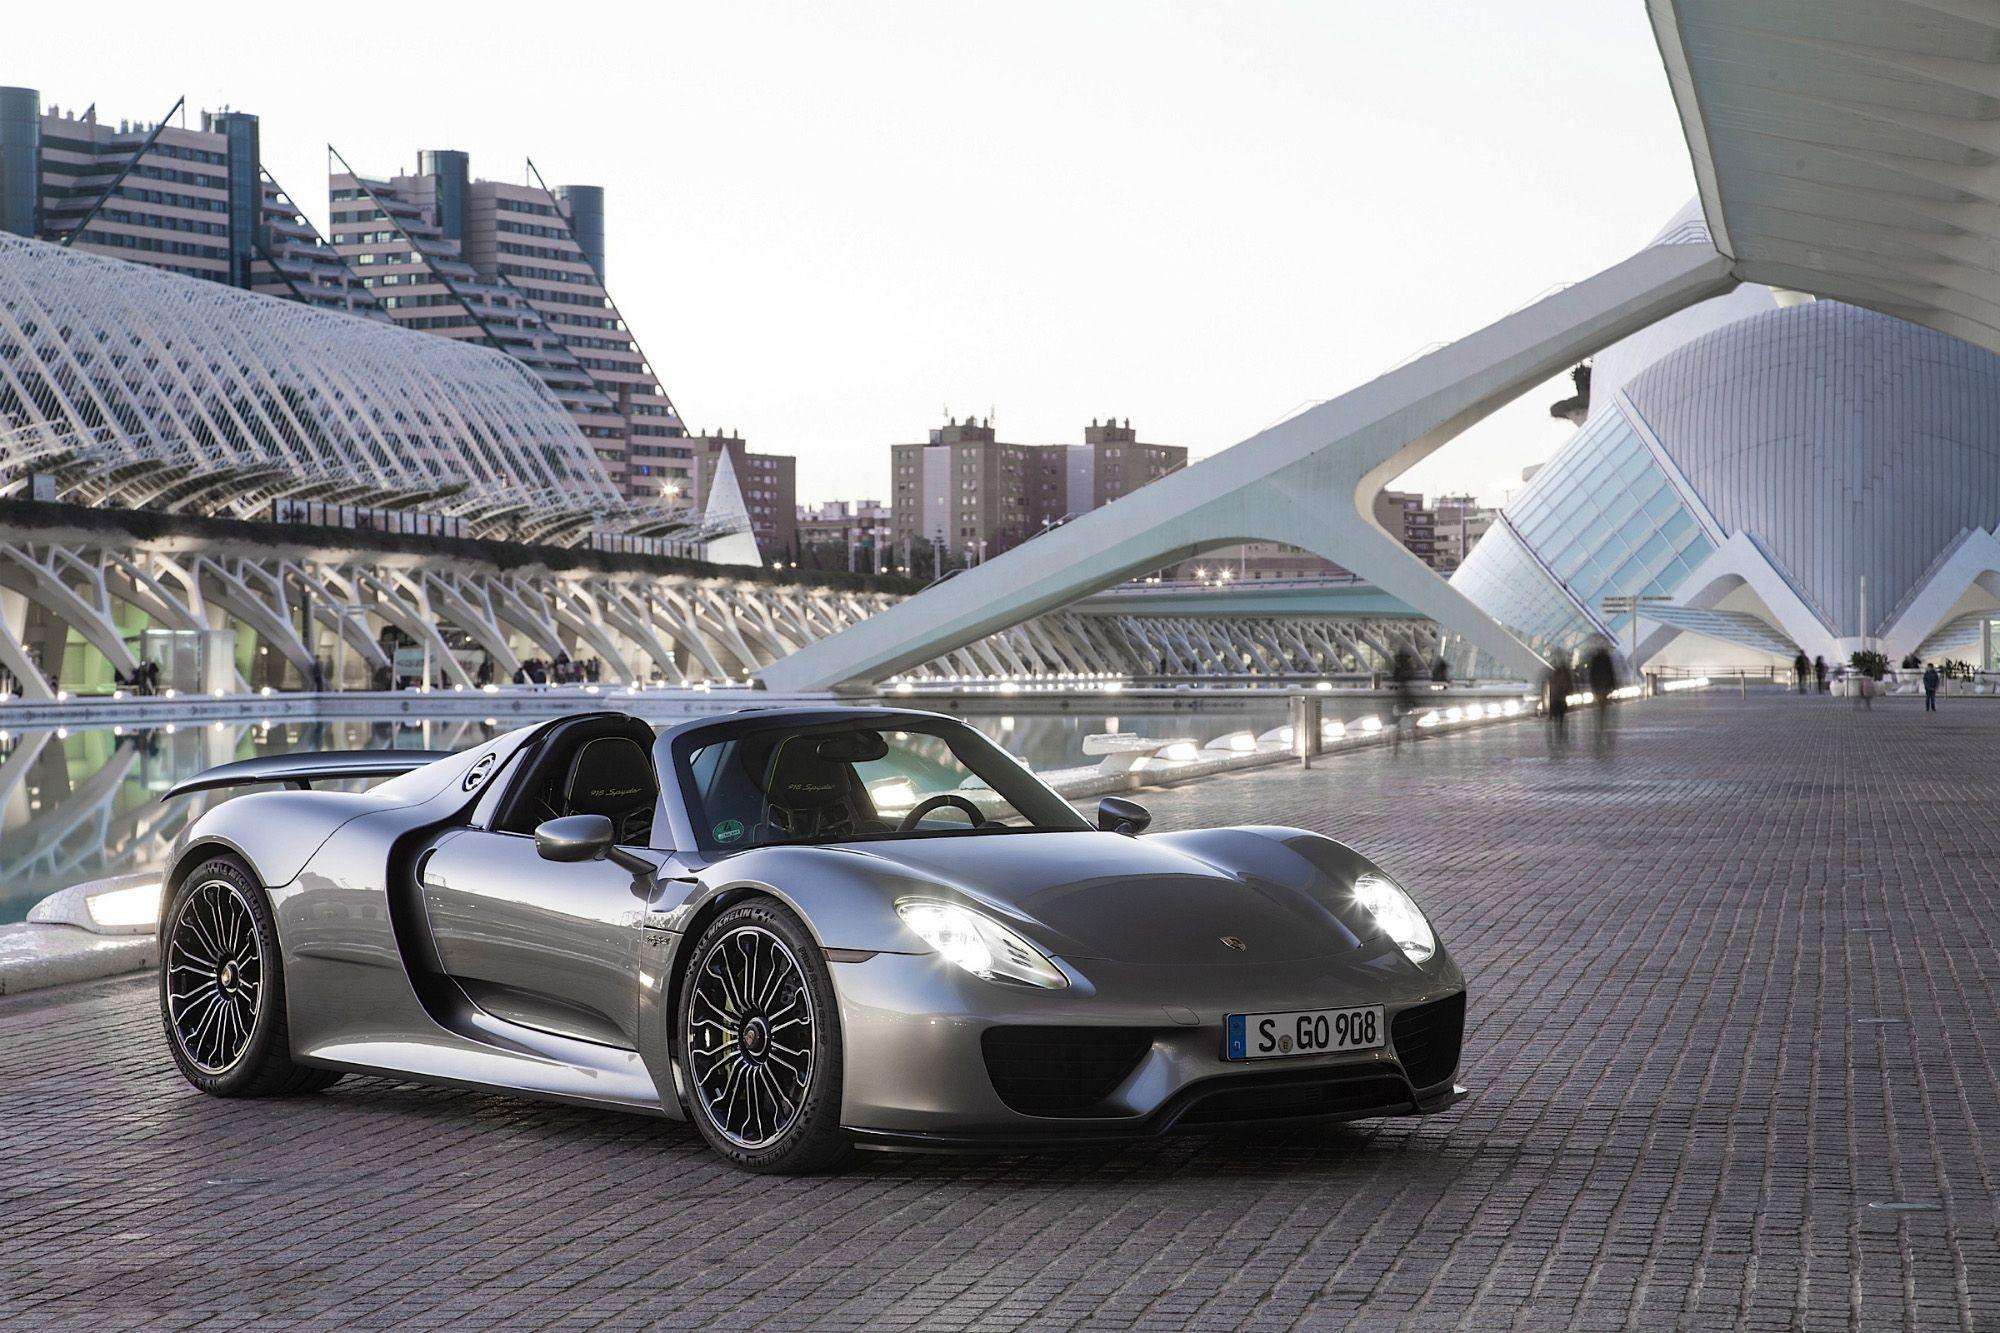 4K Ultra HD Porsche 918 Spyder Wallpapers For Free, Wallpapers - 4USkY